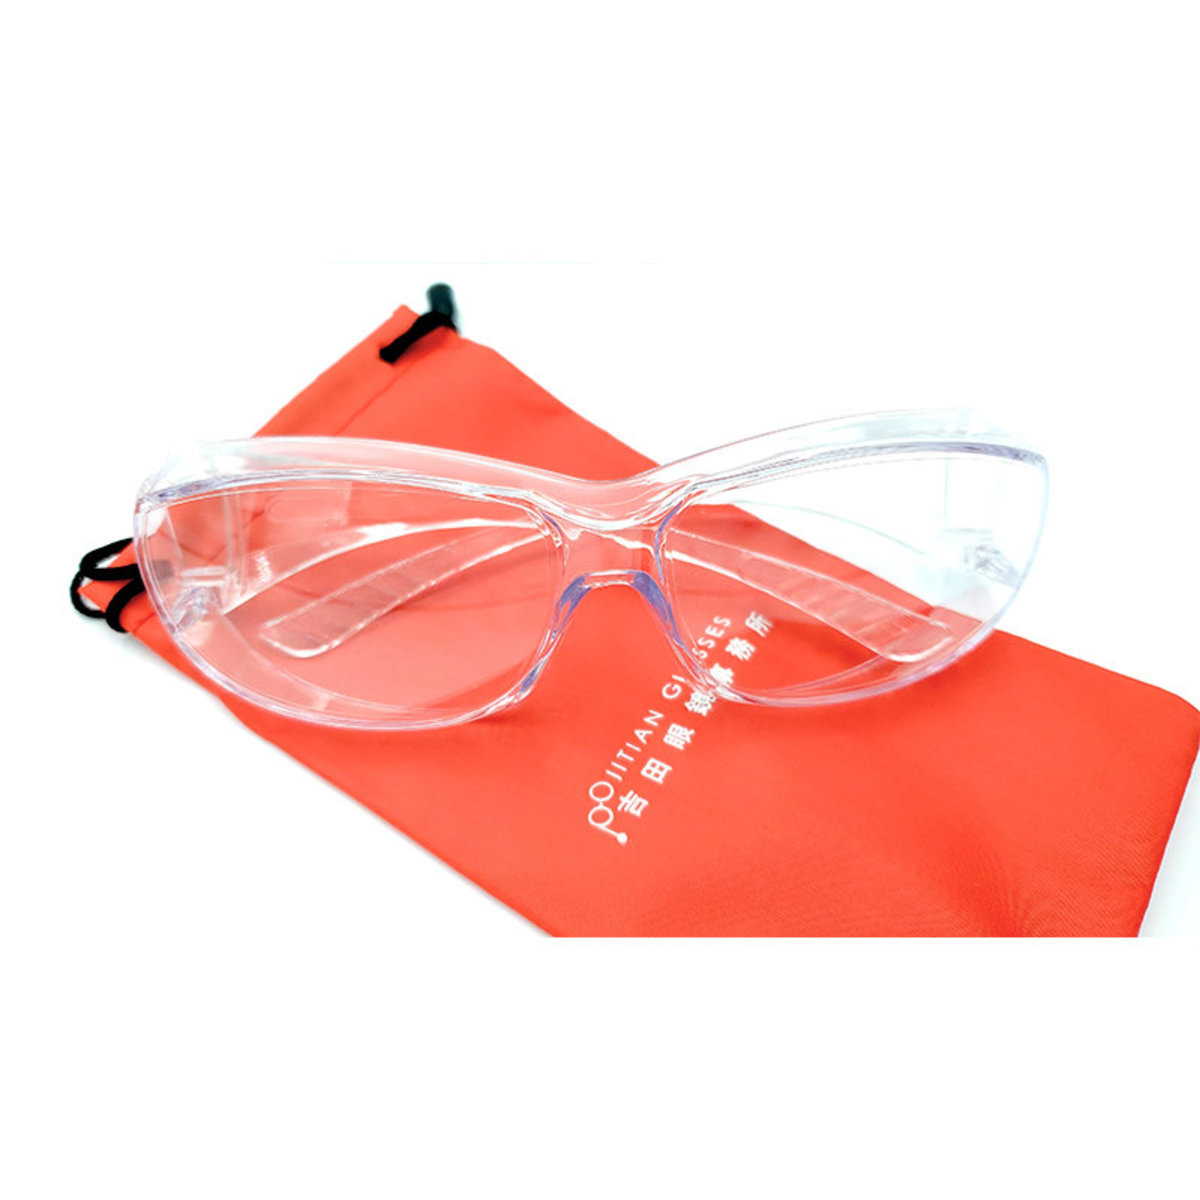 Taiwan Made Transparent Eye Goggles against Dust and Droplet Infection 1 pair (Orange Bag)